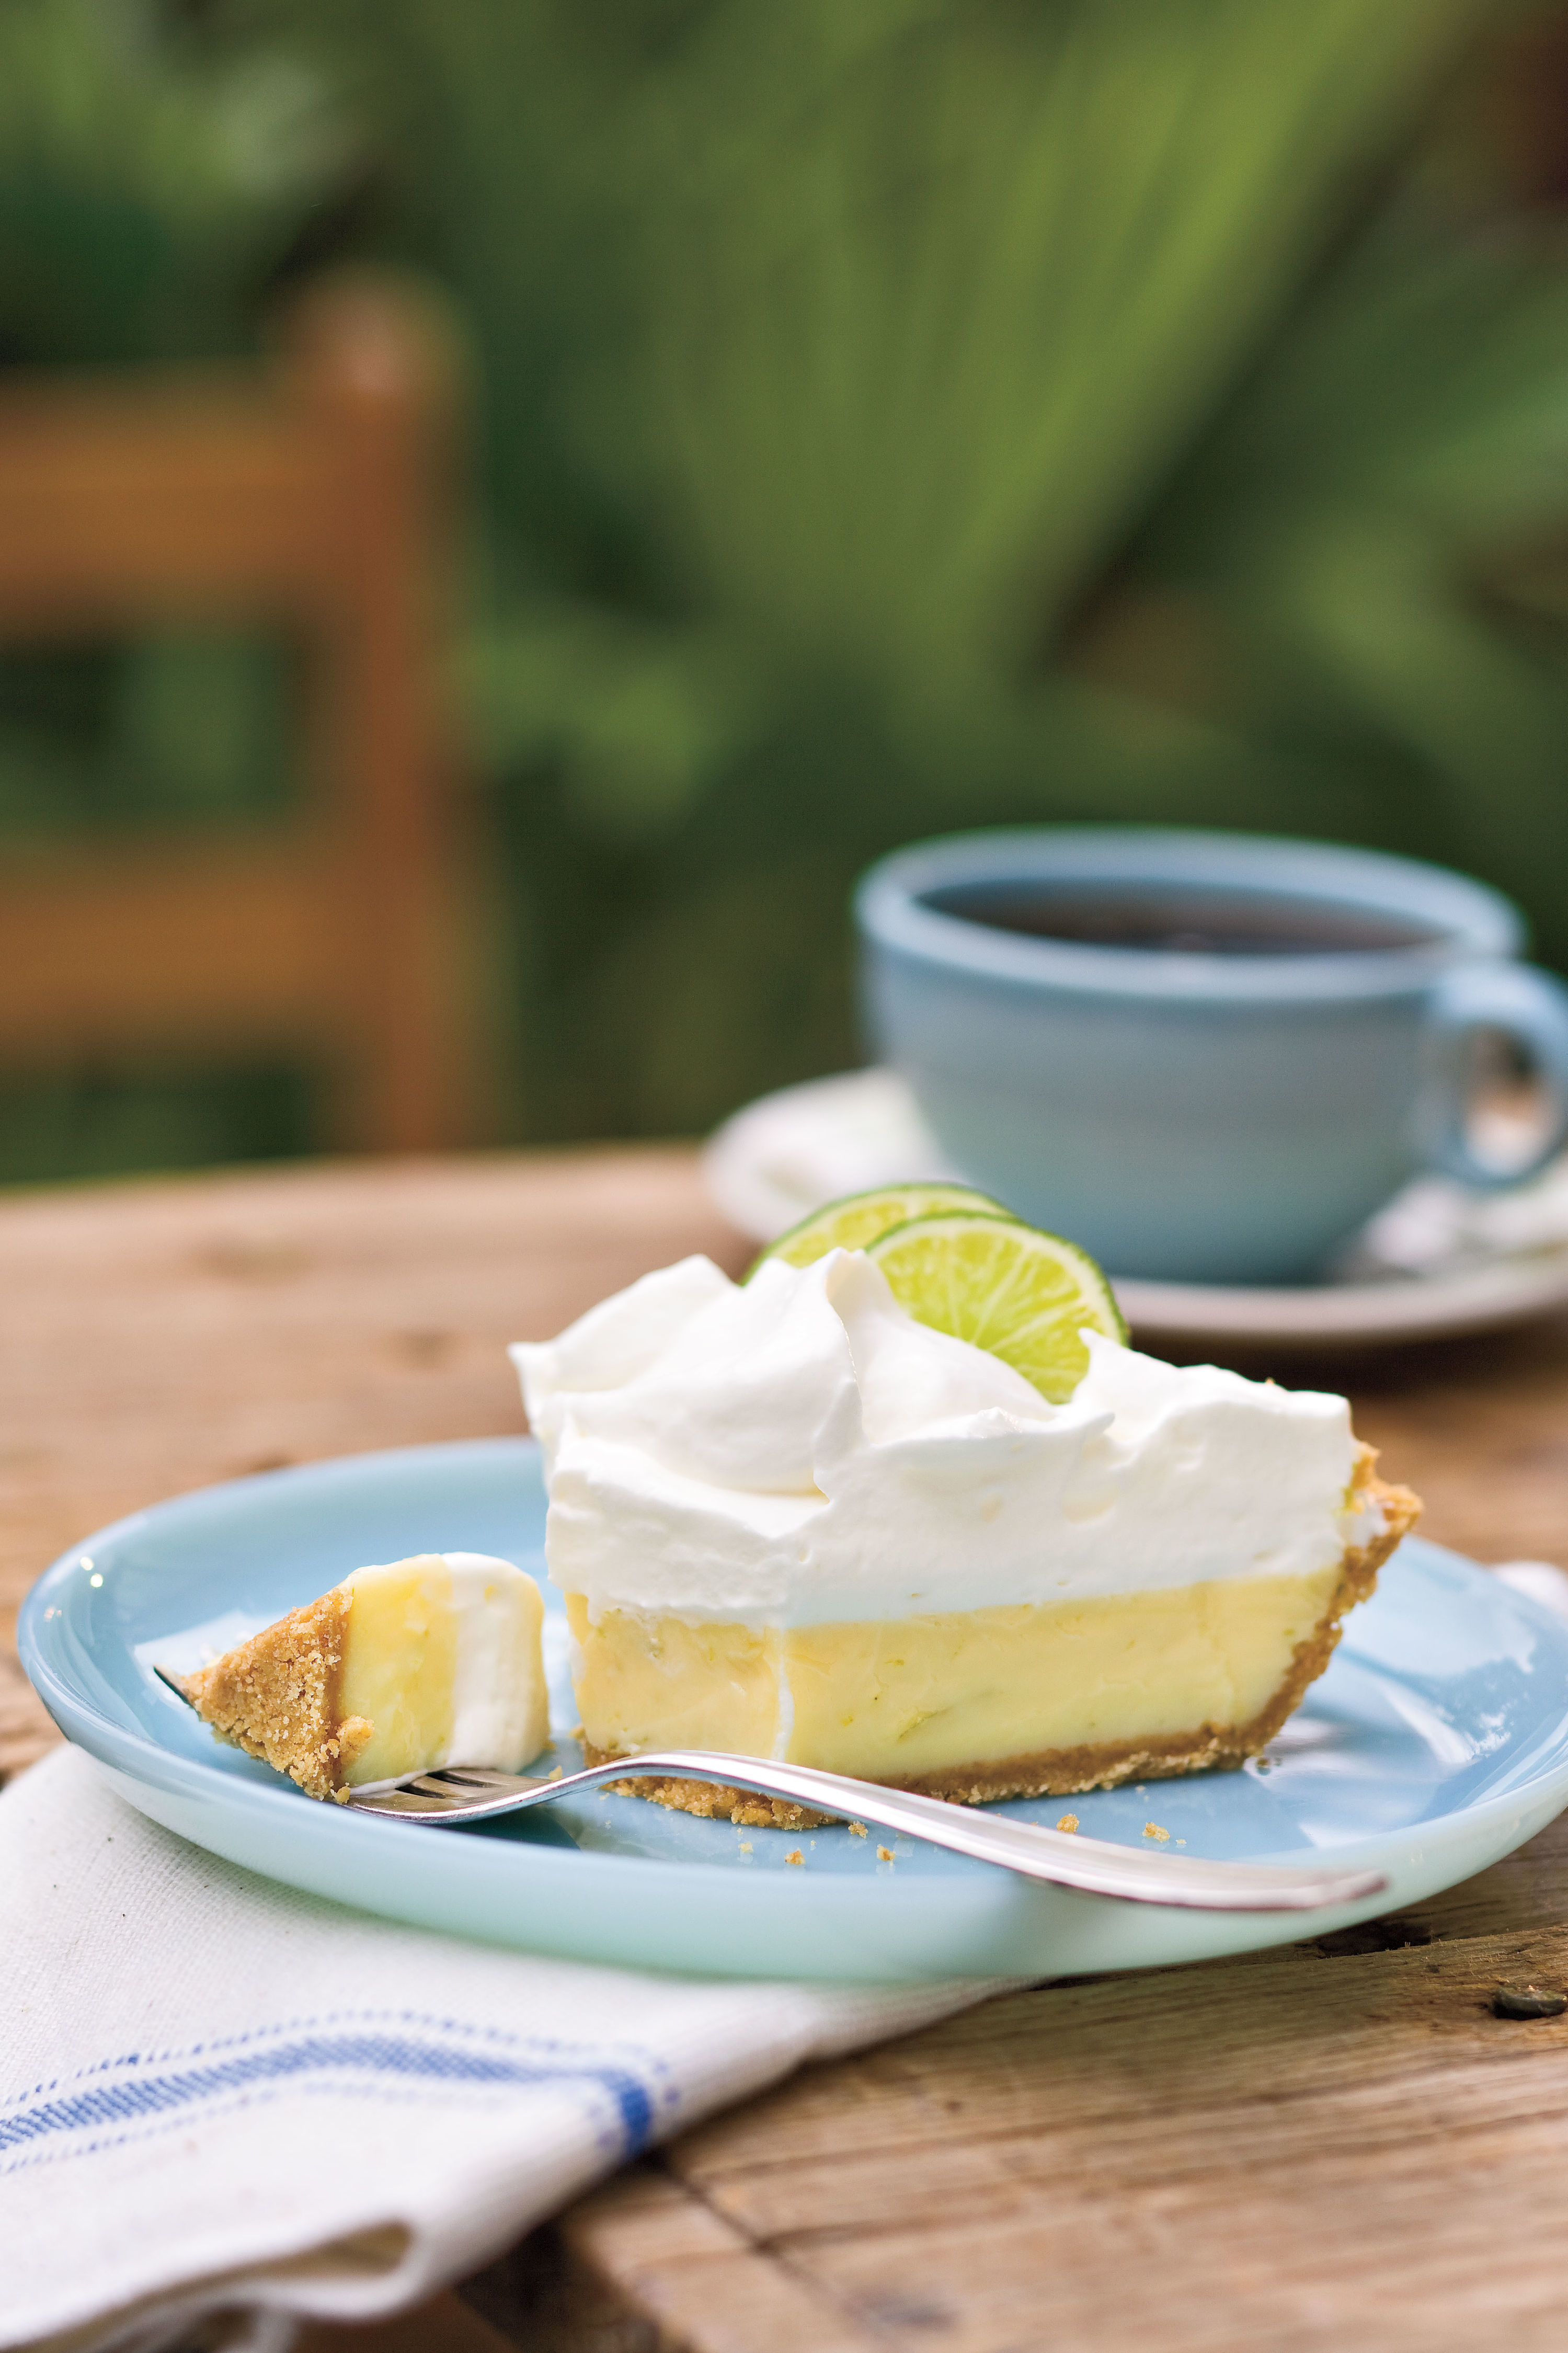 The Mysterious Origin of Key Lime Pie